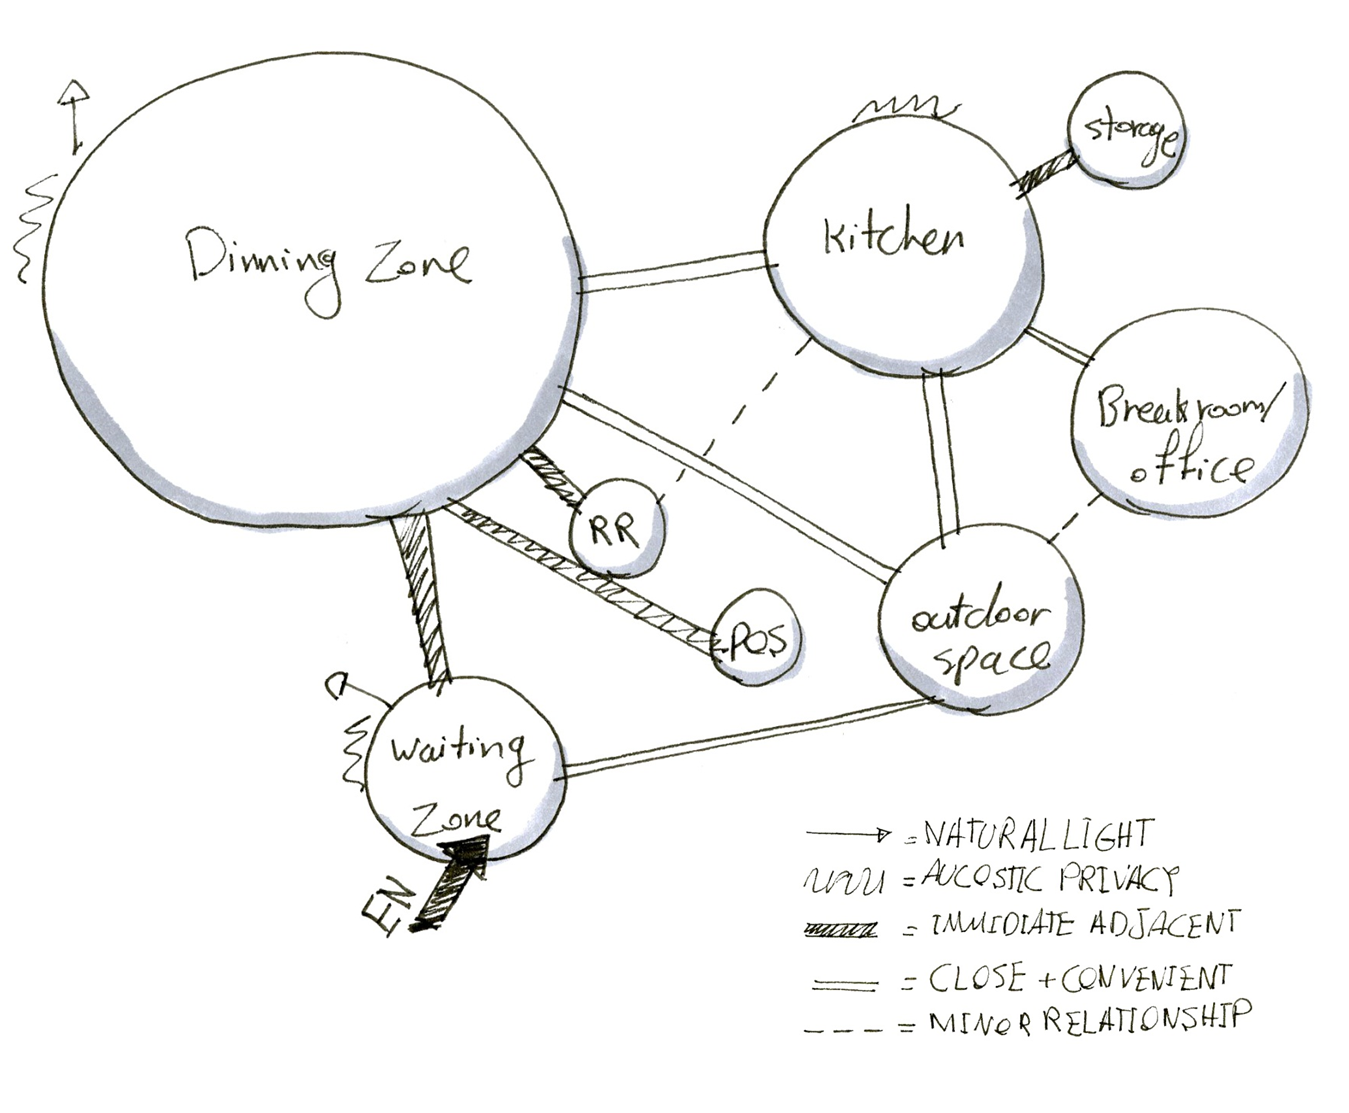 hight resolution of this bubble diagram for restaurant depicts various spaces in restaurant whcih includes arrival front of house and back of house